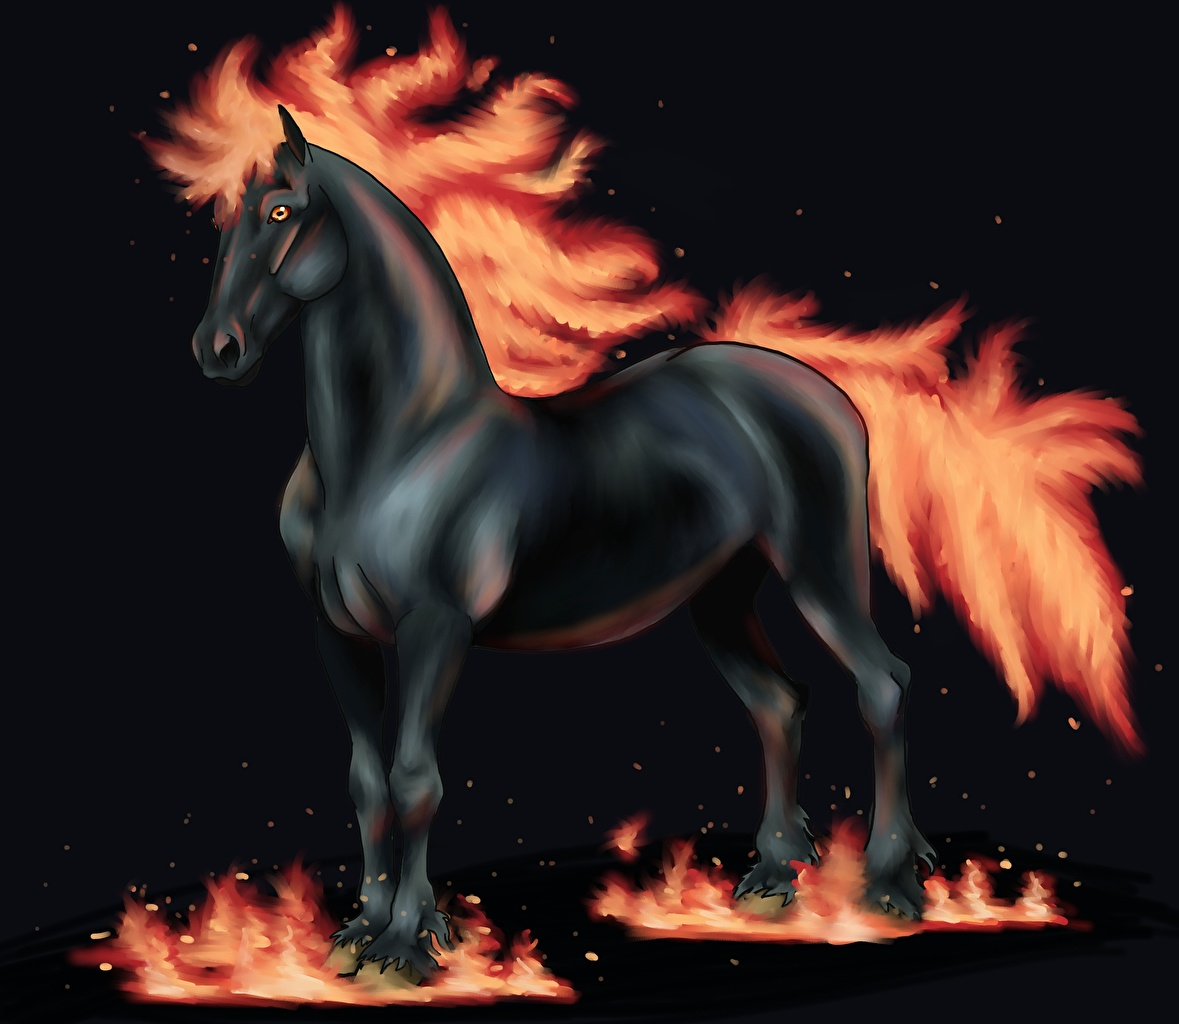 Image Result For Fire Wallpaper Hd